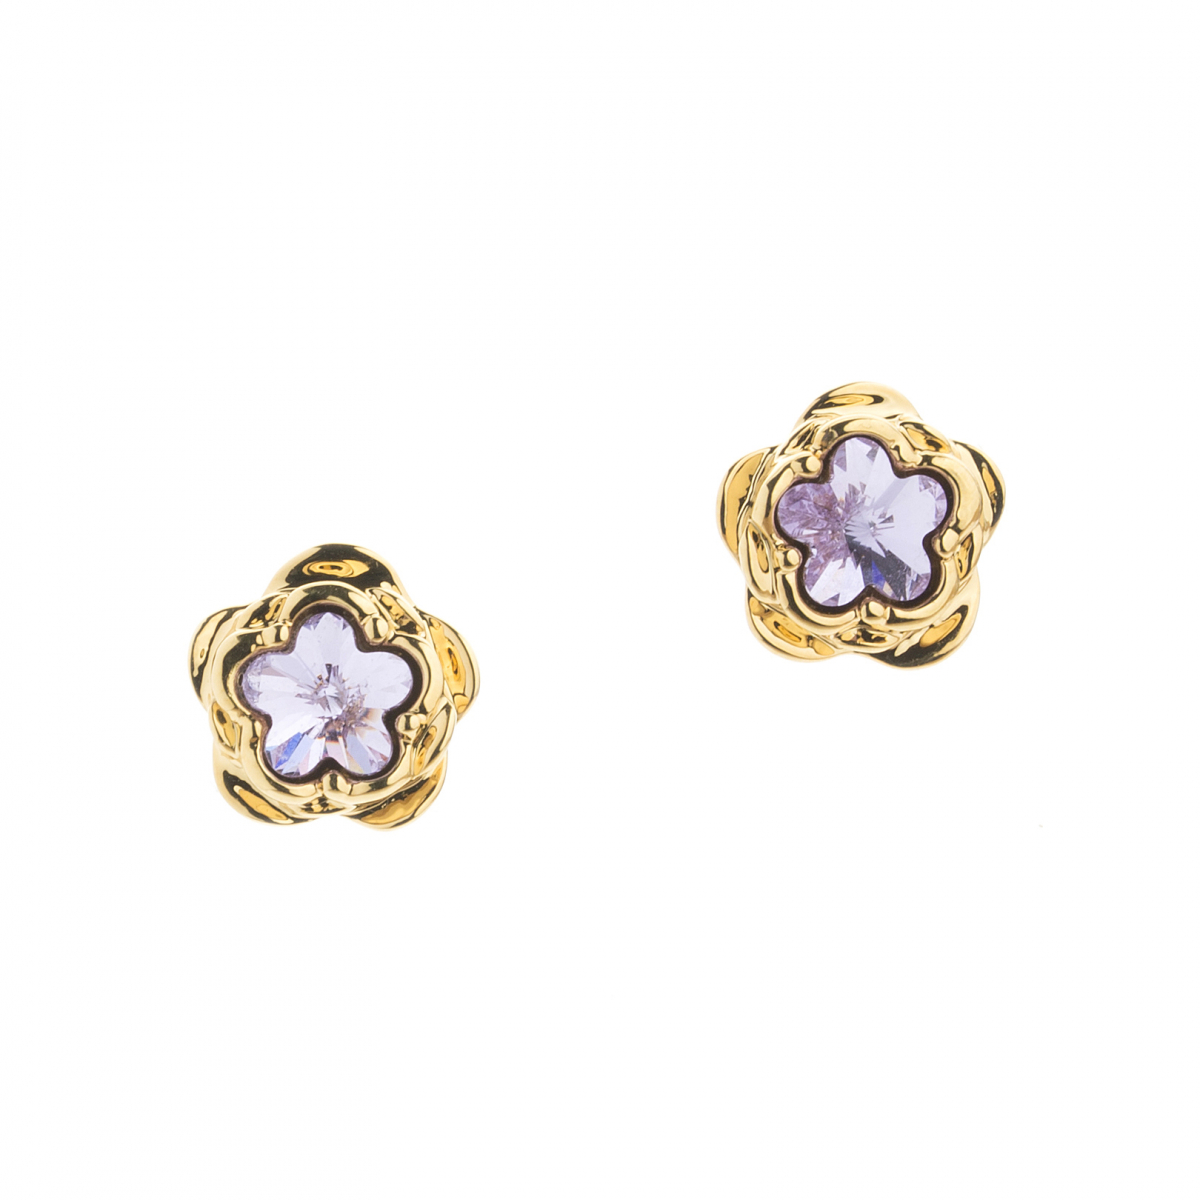 Large Botanical Floral Clip On Earring - Gold